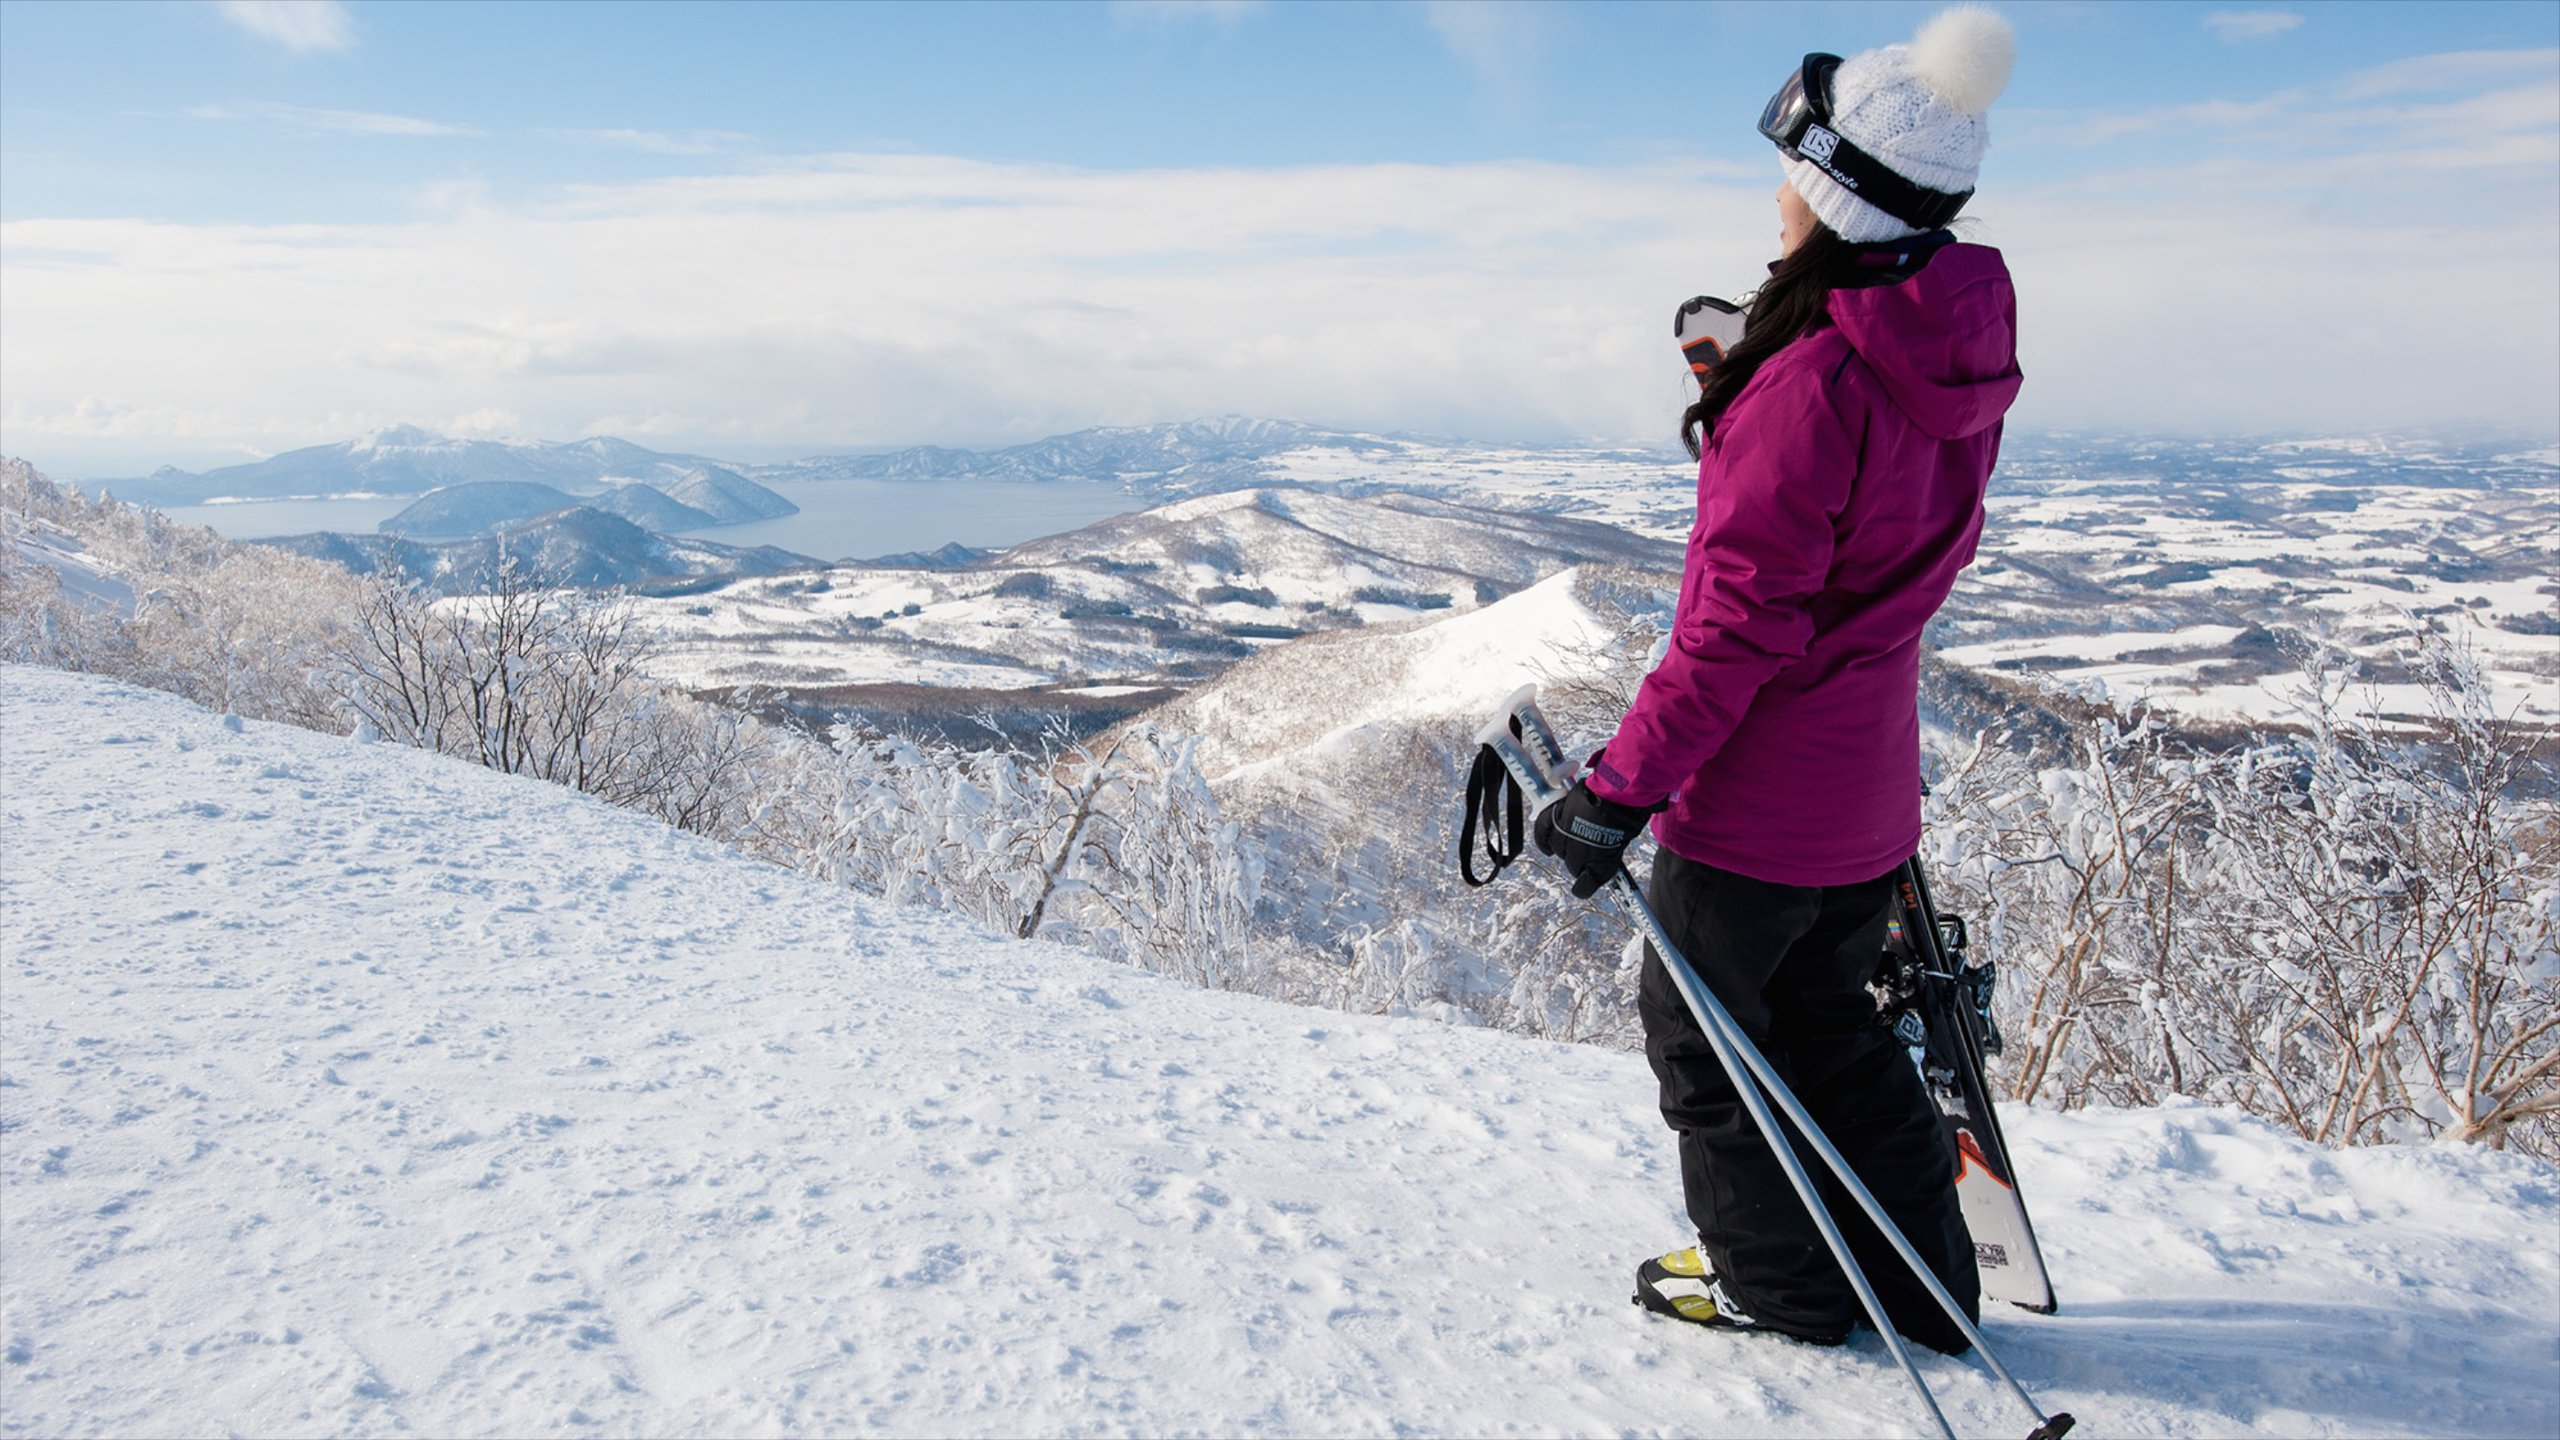 Visit a fabulous winter playground with miles of skiable trails for all levels and lots of snow-based fun away from the slopes.